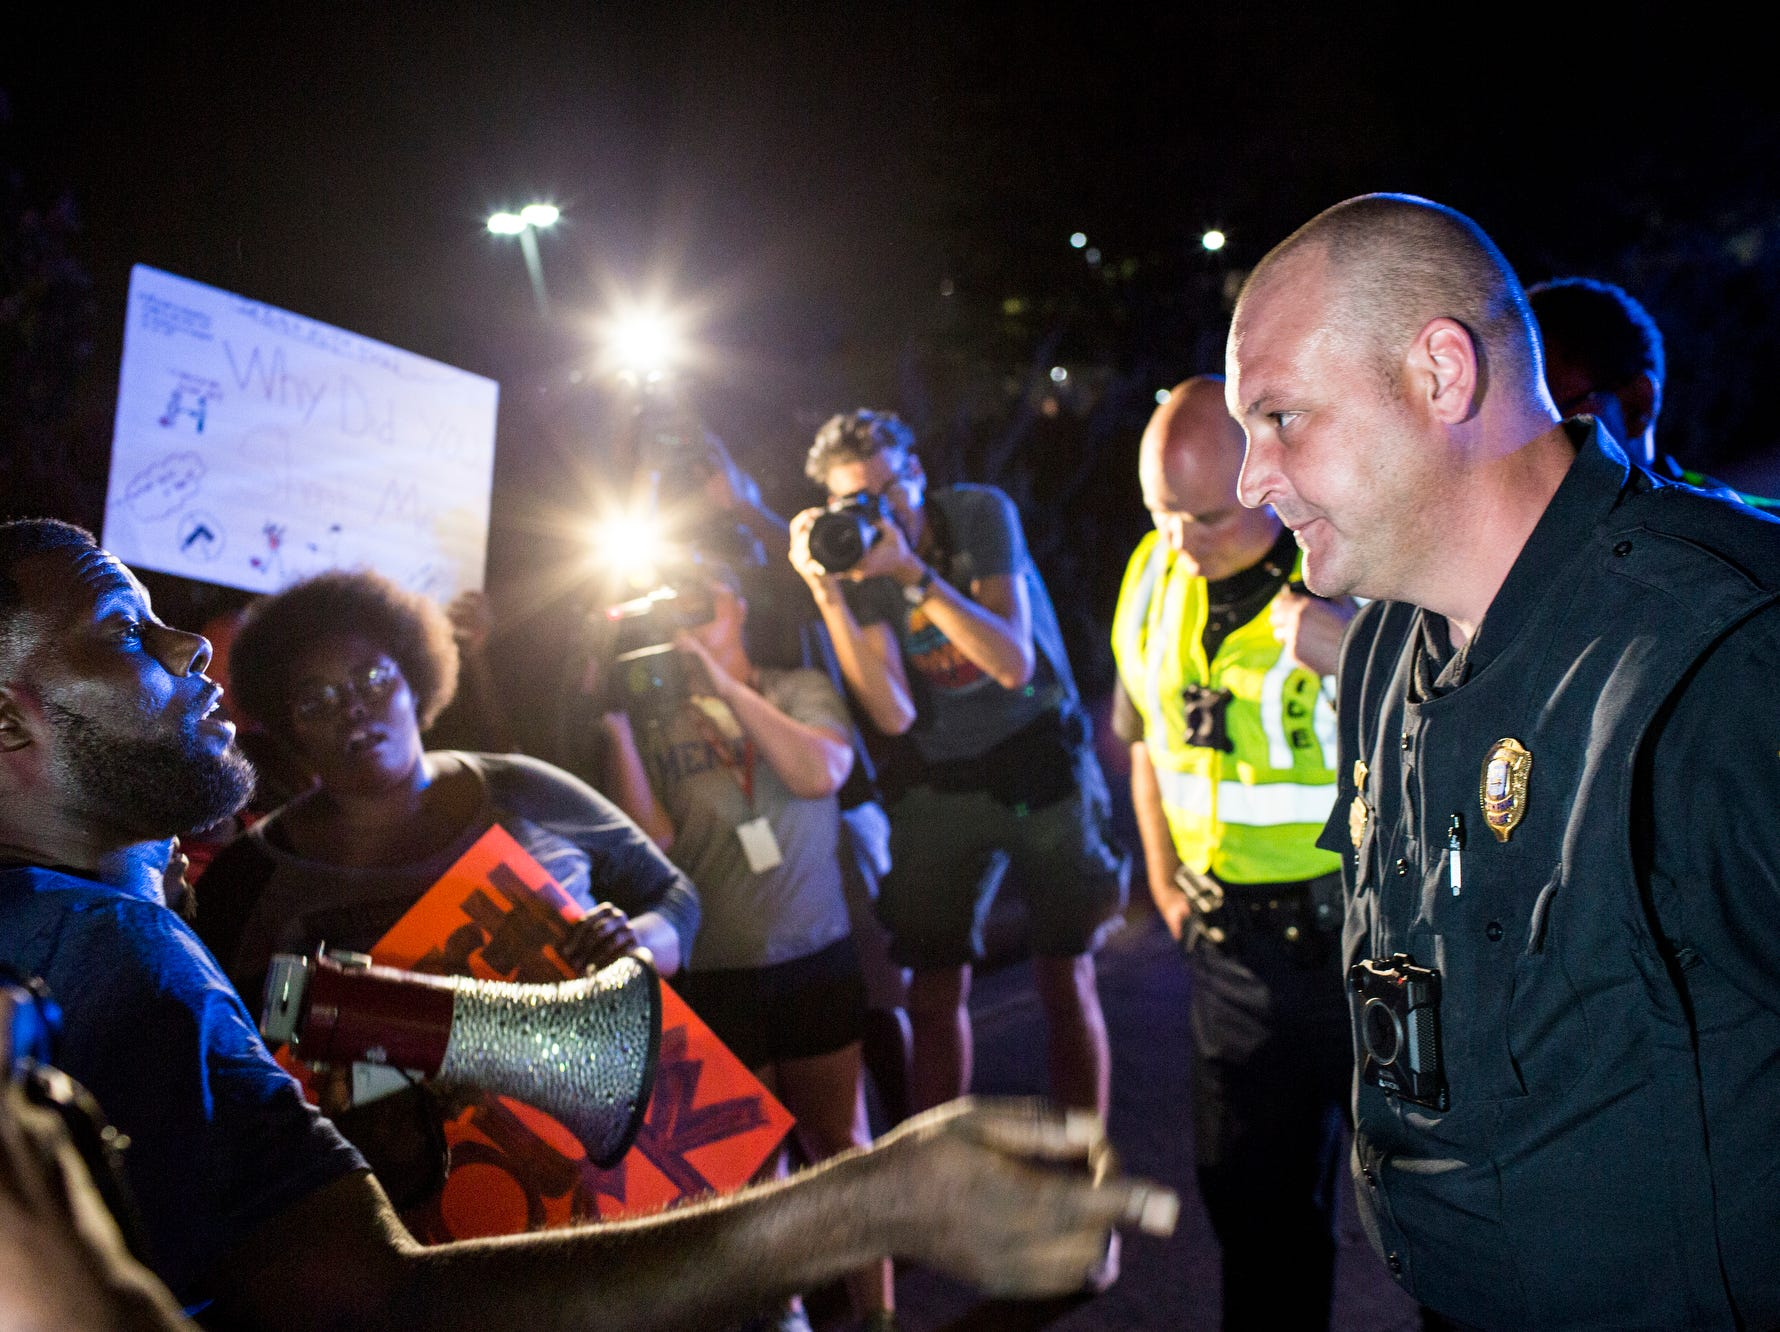 September 19 2018 - Memphis activist Keedran Franklin talks with a Memphis police officer along Airways Blvd. near the Memphis Police Department's Airways Station while protesting the officer-involved shooting of Martavious Banks. The protests came after news that officers involved in the shooting of Banks may have improperly switched off their dashboard or body cameras, or didn't turn them on.